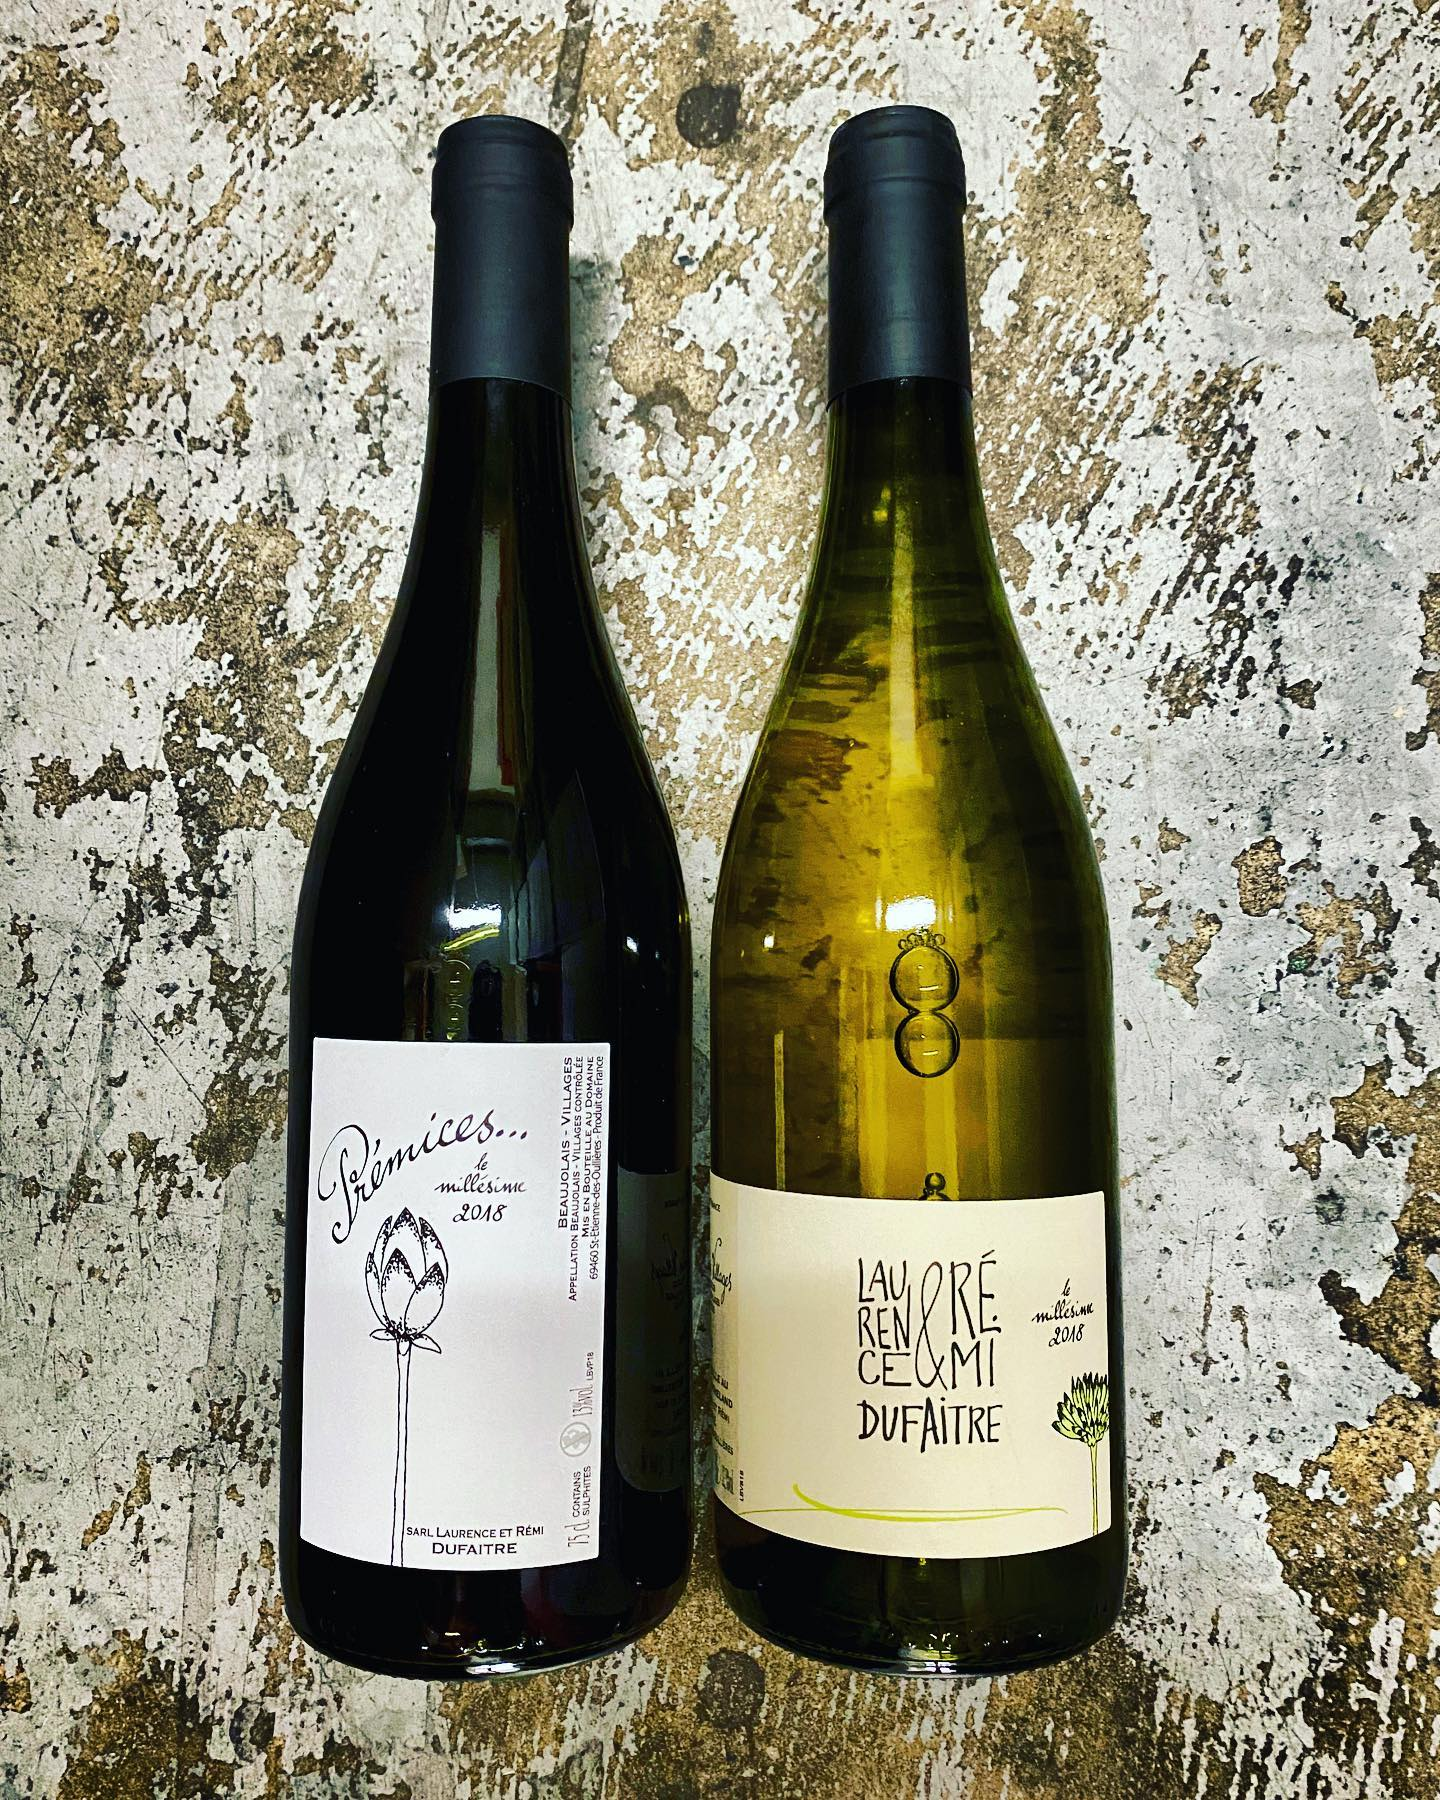 Two stunners from @remidufaitre now available at our Perkins Rd location! Under the tutelage of natural wine pioneer Jean Foillard, Remi and his wife Laurence are making deliciously affordable natural Gamay and Chardonnay in Beaujolais! @jennyfrancois Available wines:Premices Beaujolais-VillagesBeaujolais-Villages Blanc...#wine #naturalwine #calandros #calandrosmkt #shoplocal #shopsmall #geauxtigers #225batonrouge #beaujolais #gamay #chardonnay